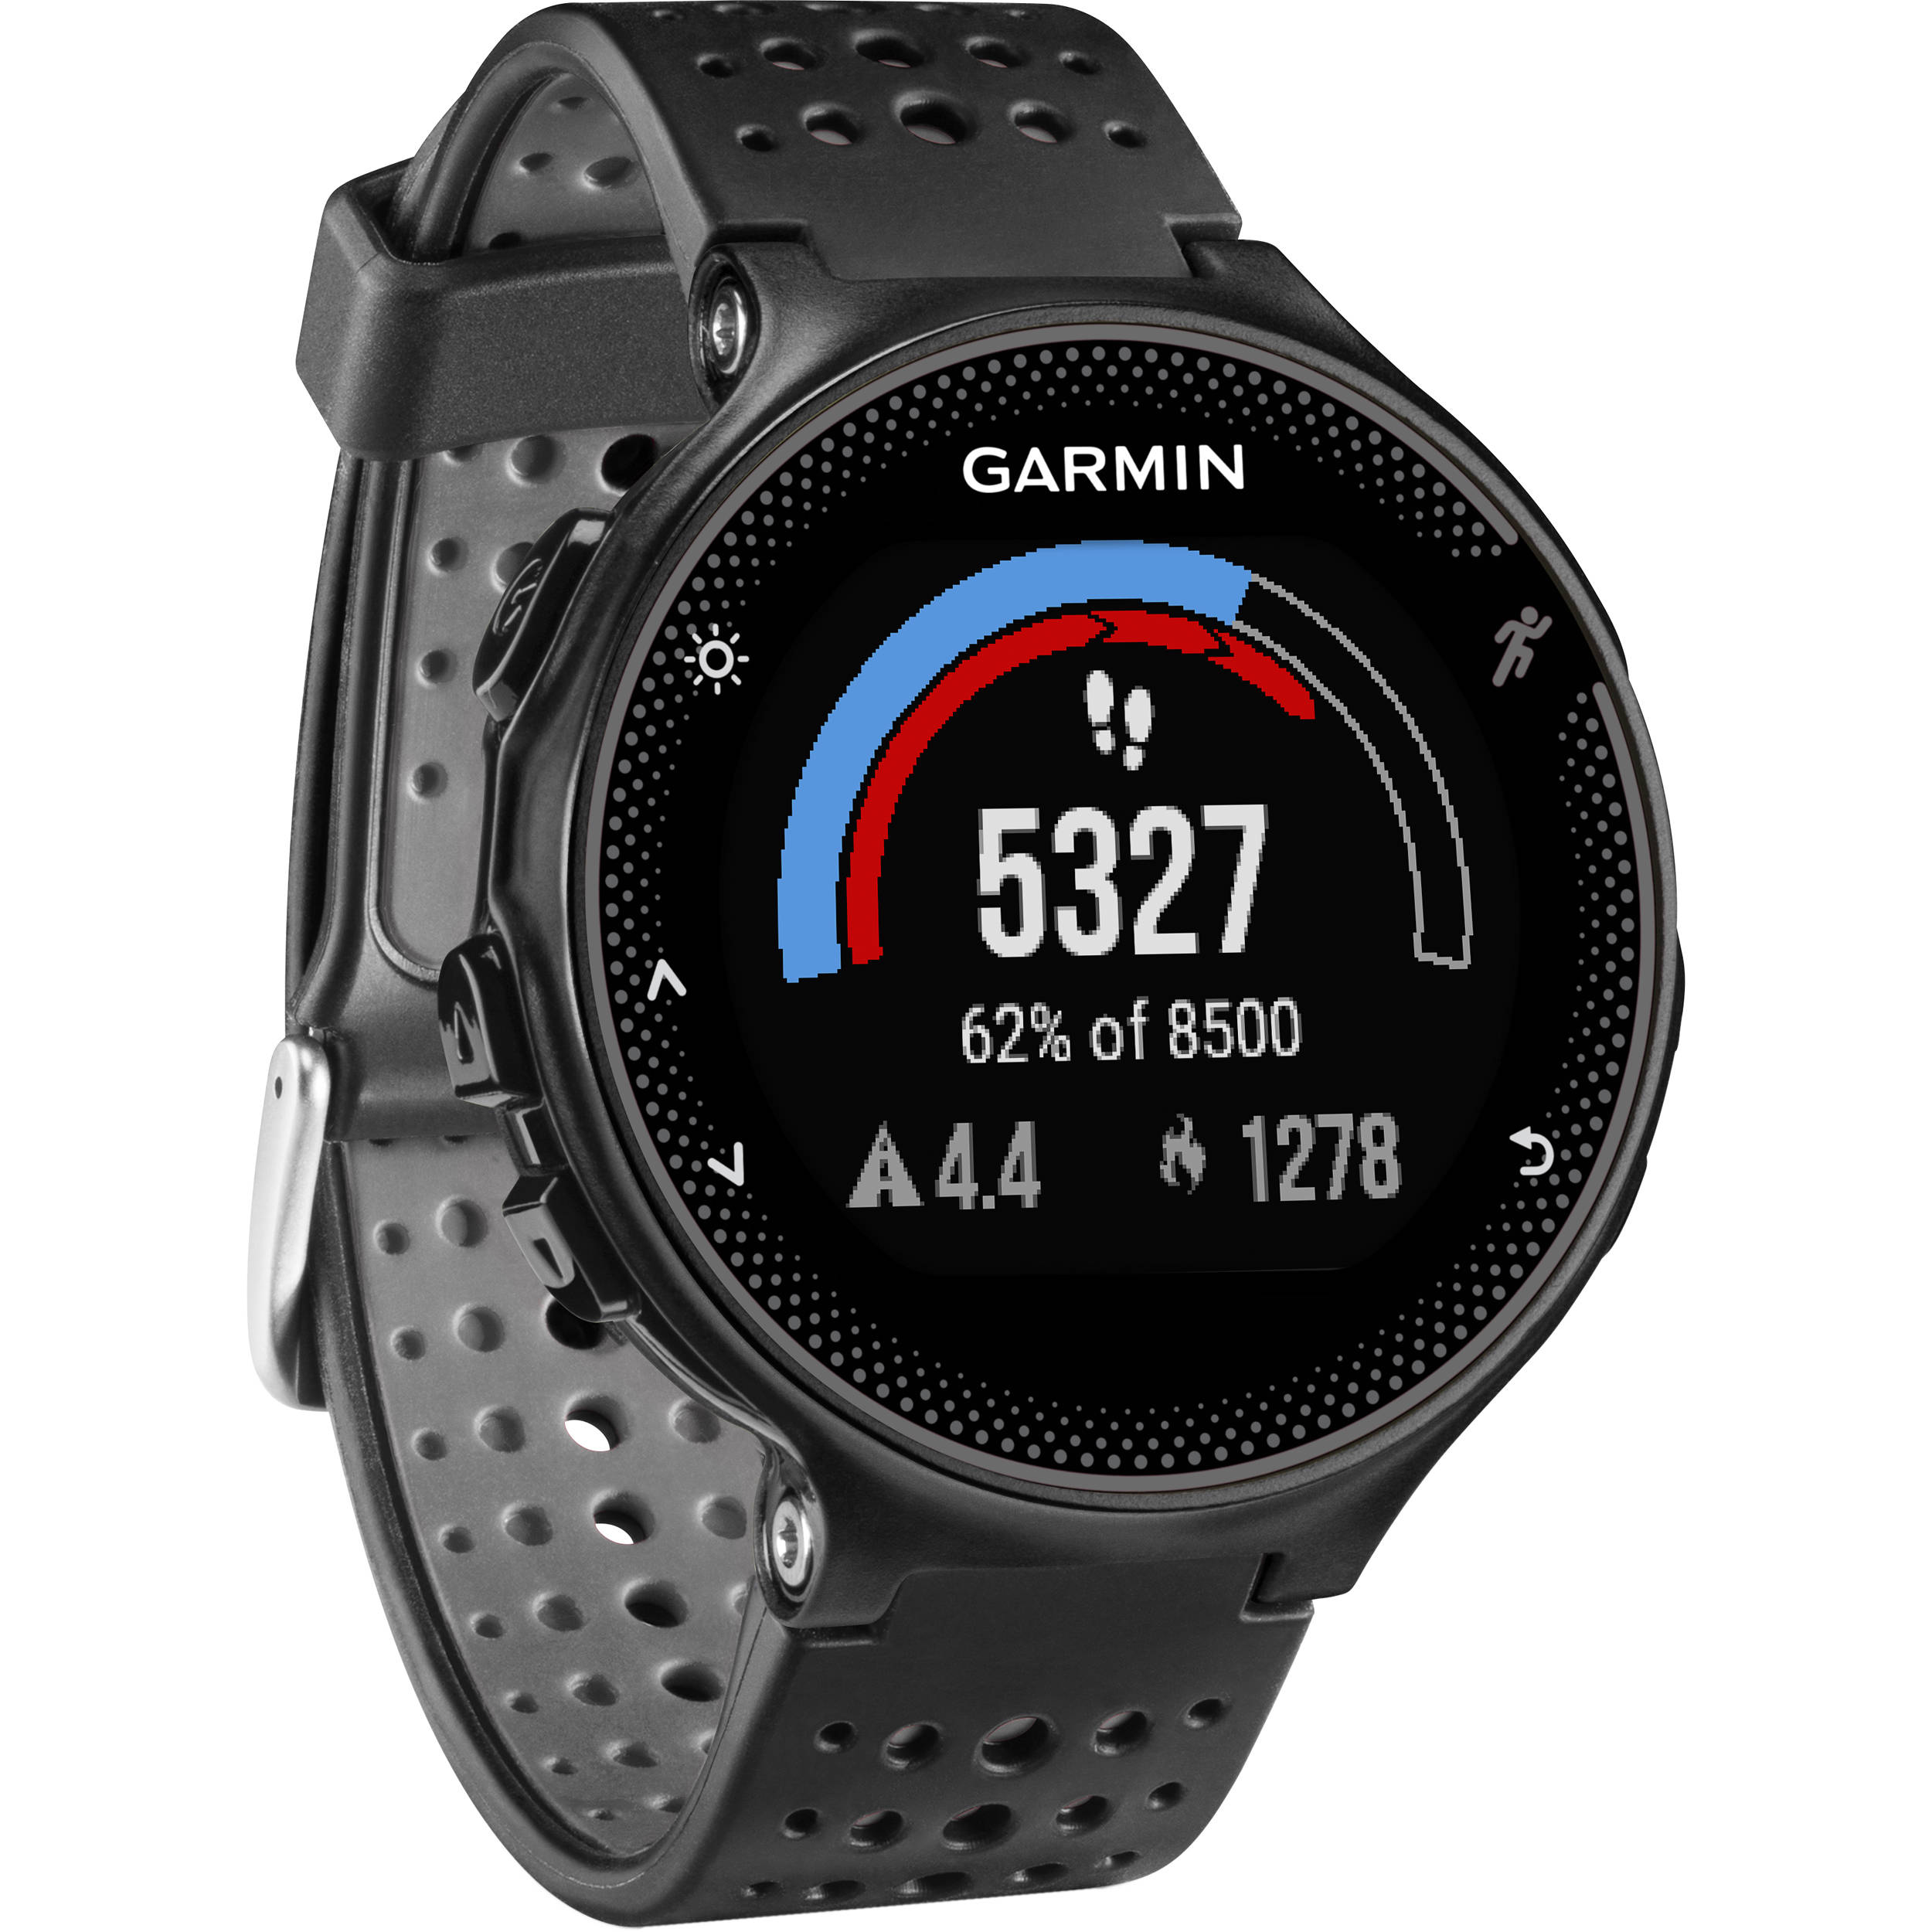 c gps white reg h watch rose sapphire multi edition training garmin goldtone sport fenix b product watches